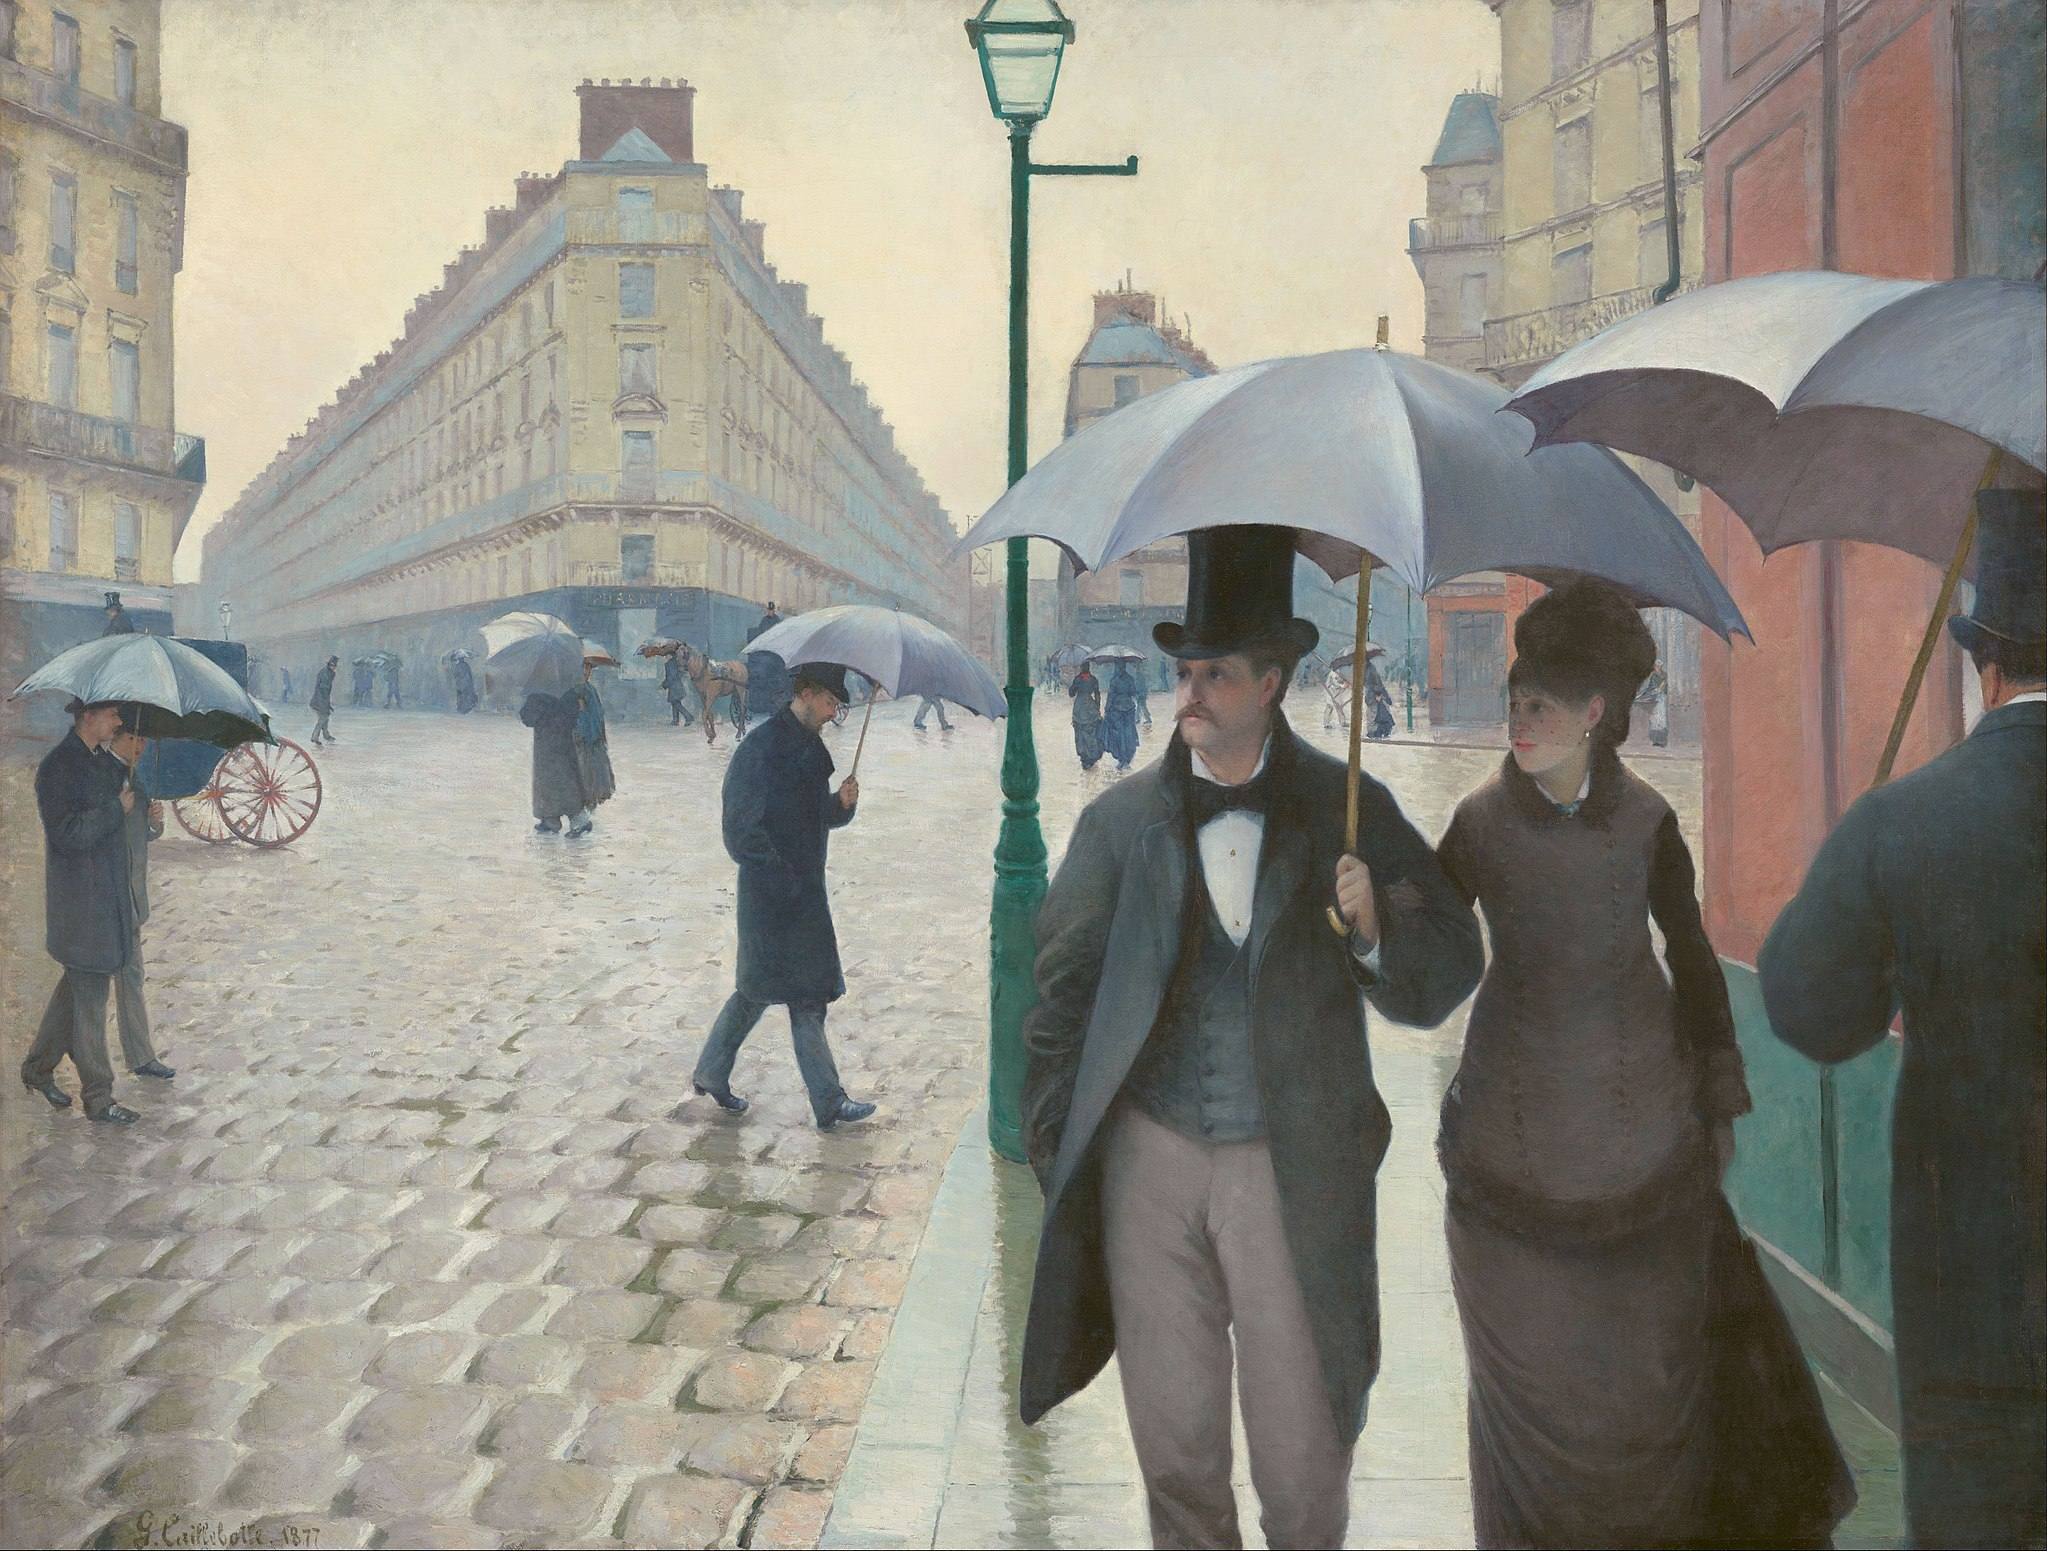 Gustave Caillebotte - Paris Street; Rainy Day (Art Institute of Chicago)